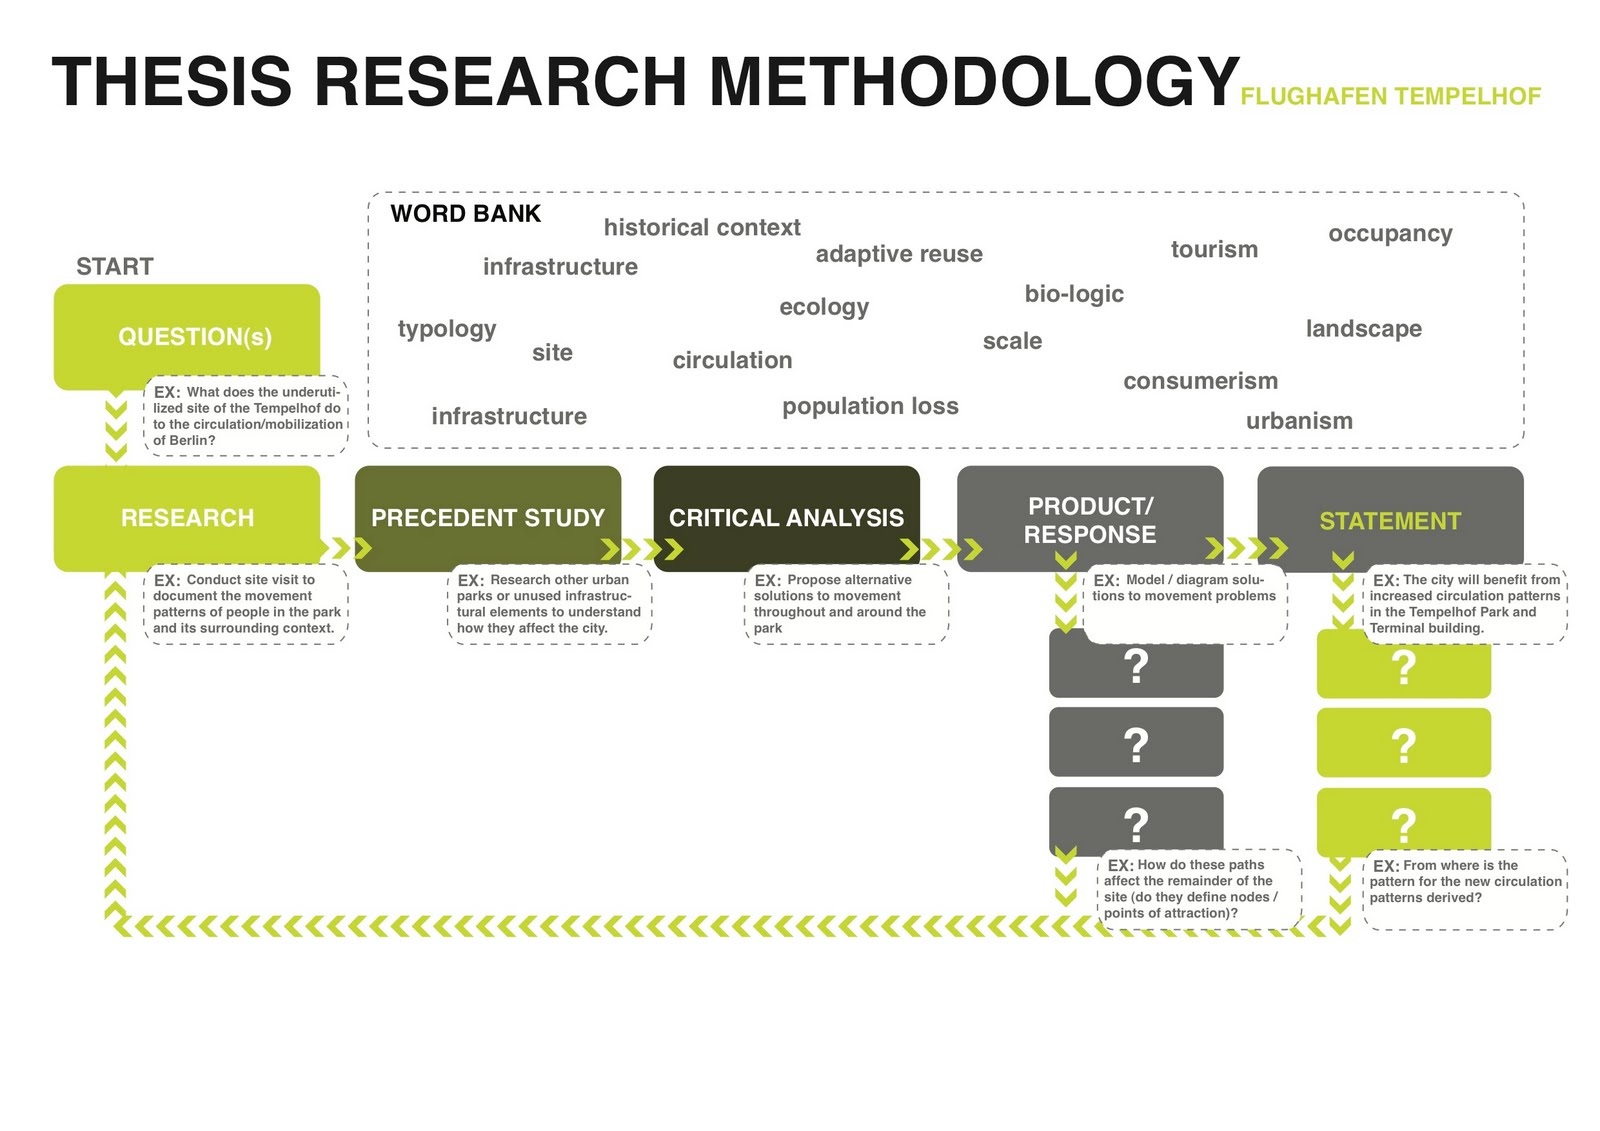 thesis research method The methods section describes actions to be taken to investigate a research problem and the rationale for the application of specific procedures or techniques used to identify, select, process, and analyze information applied to understanding the problem, thereby, allowing the reader to critically .